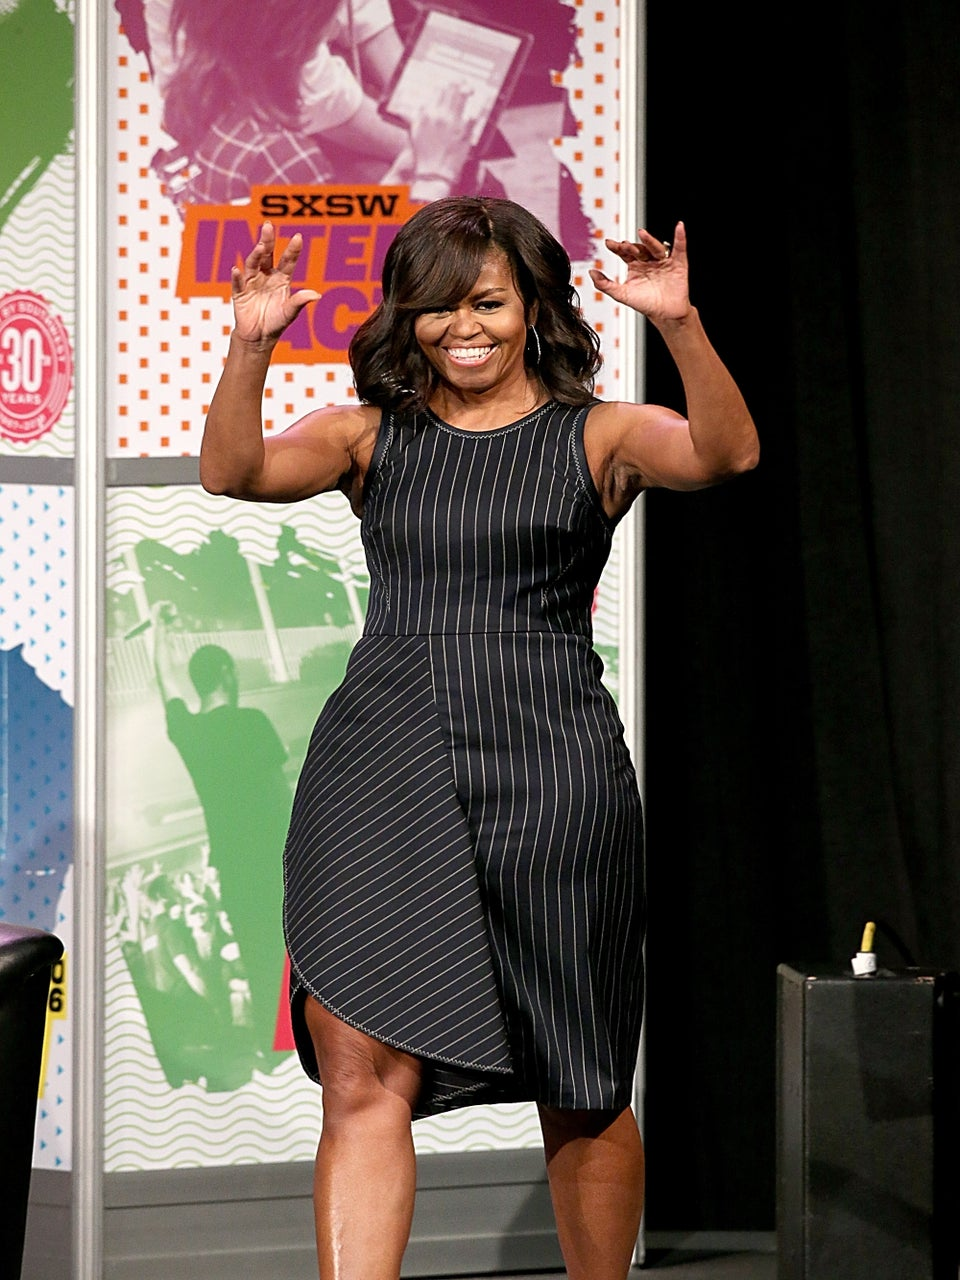 Michelle Obama Shares How She Shook off Sexist Haters